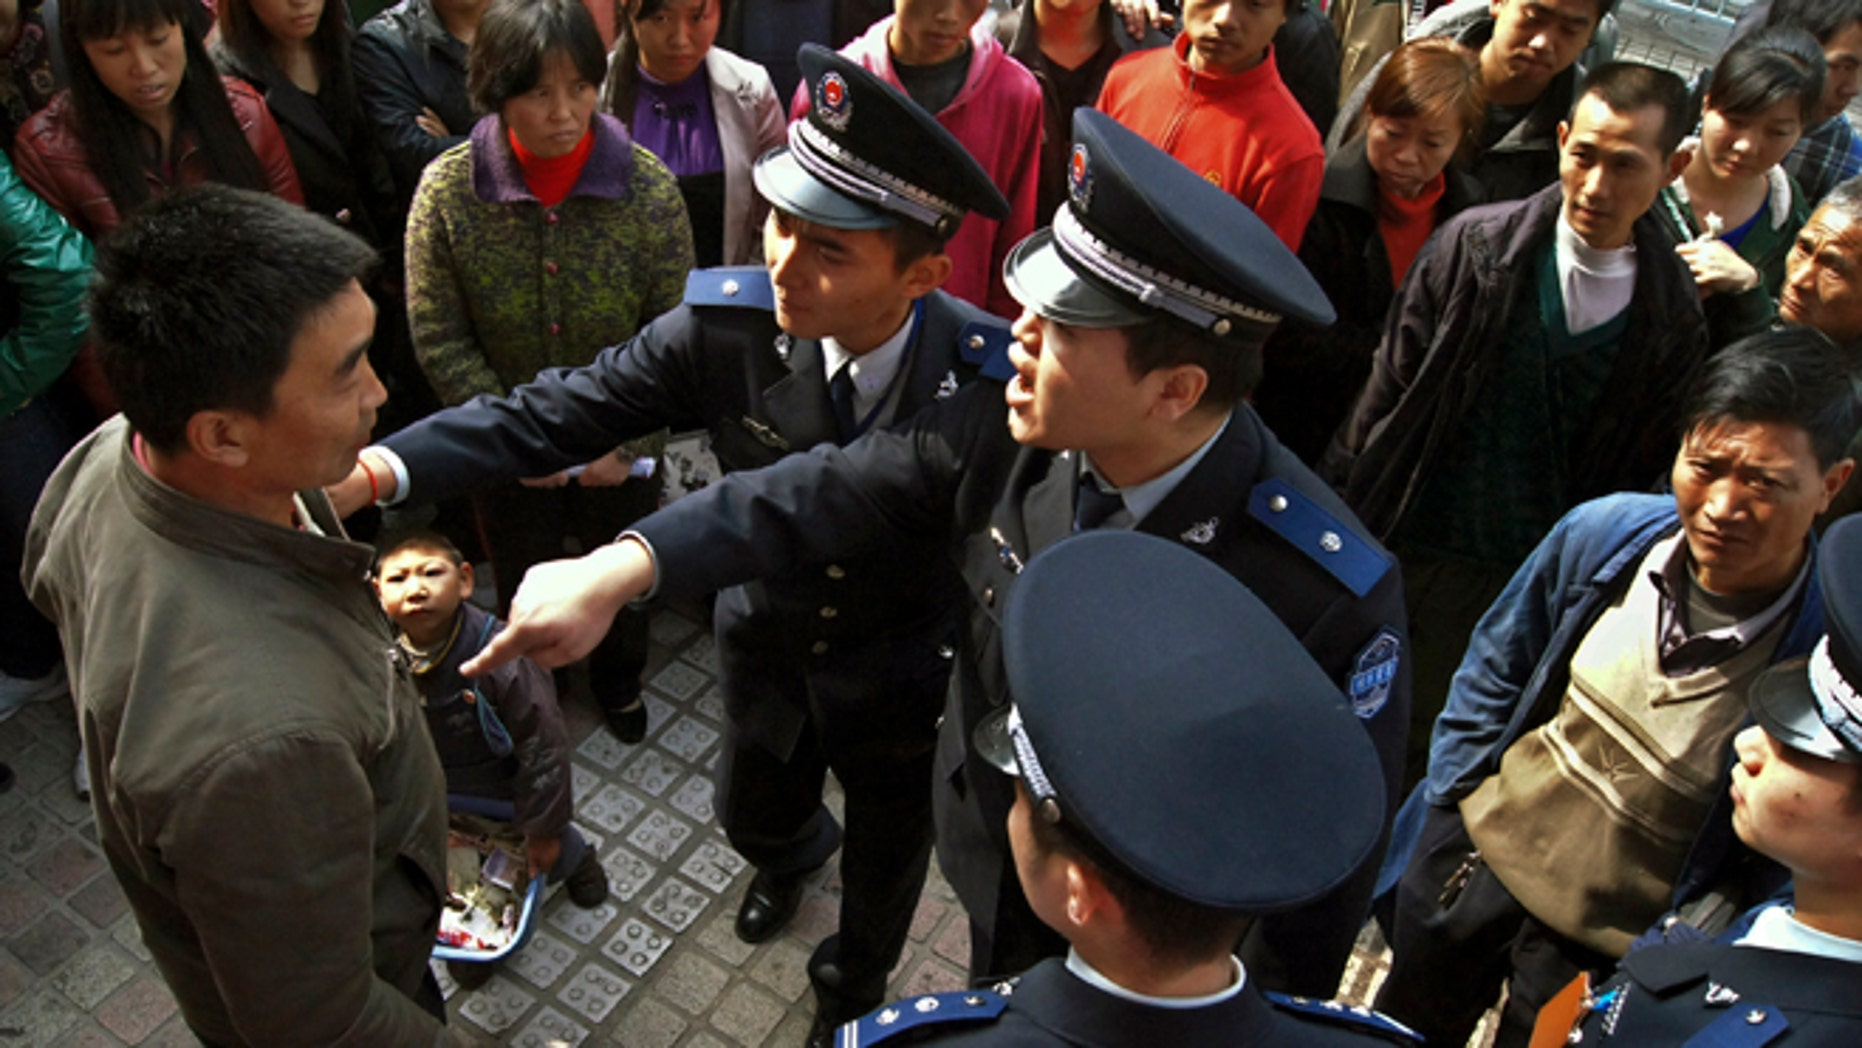 Nov. 20, 2011: Officers of the urban management bureau, known as chengguan in Chinese, demand a beggar and his child to leave a street in Guiyang, in southwestern China's Guizhou province.